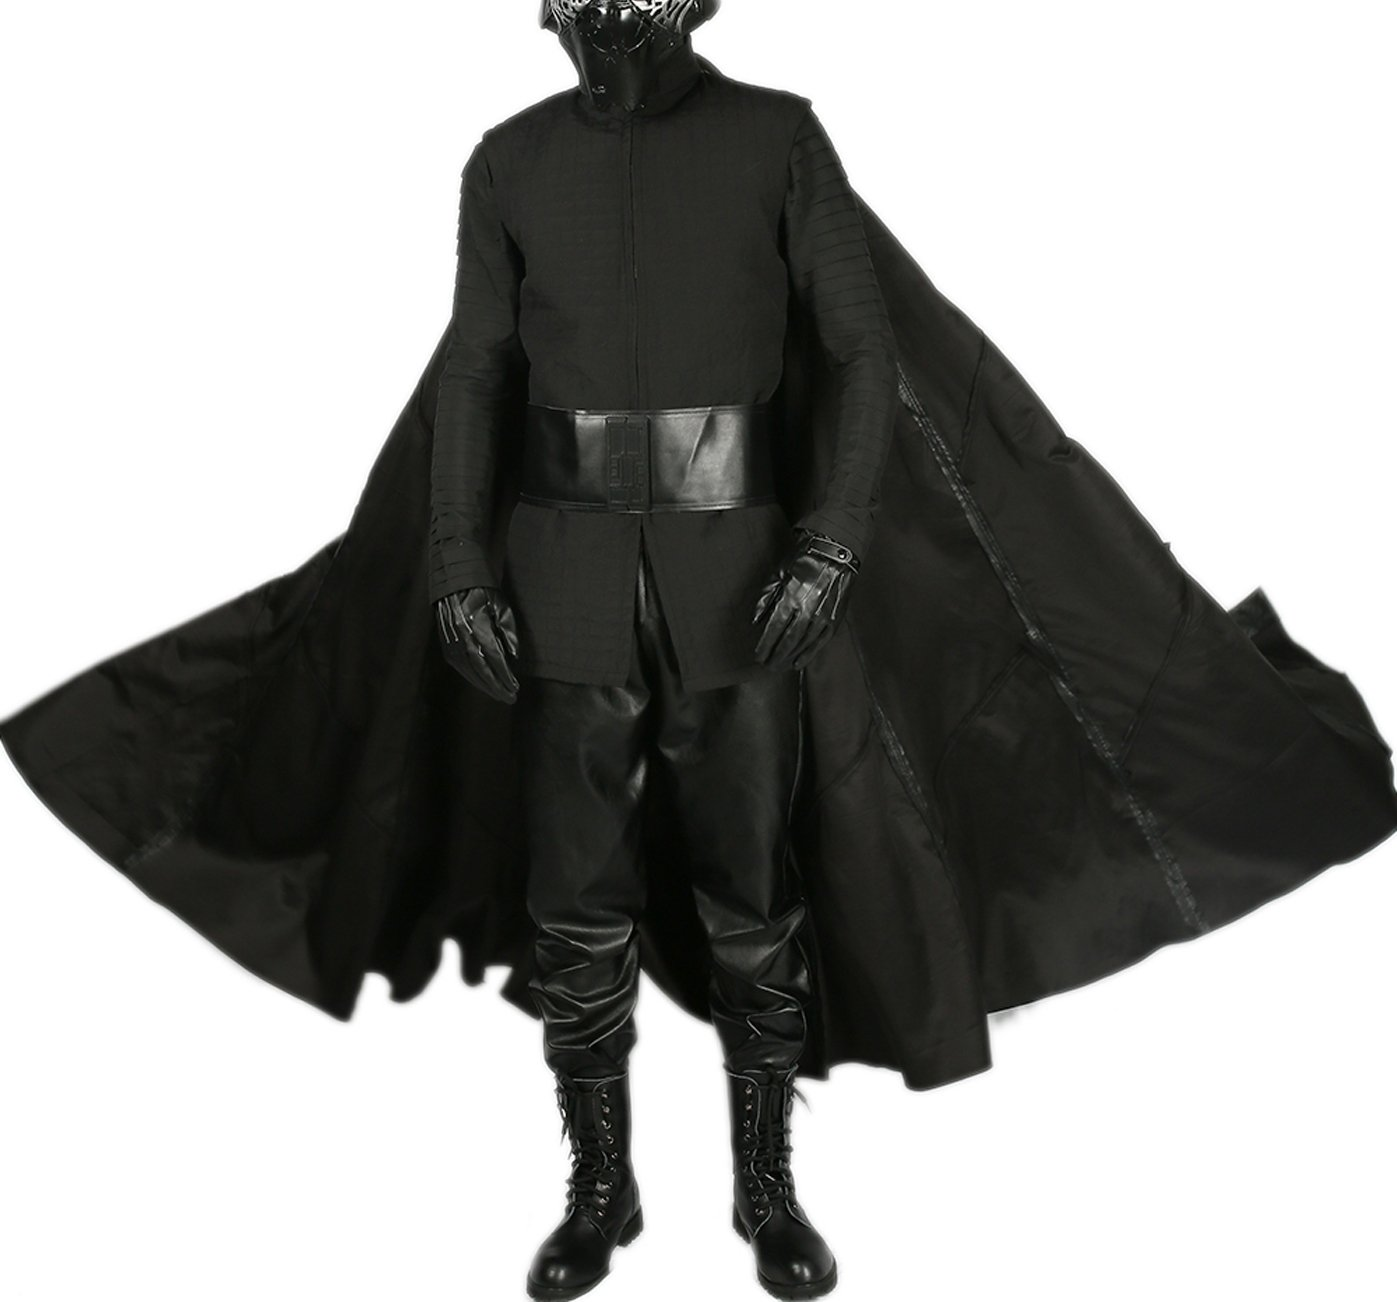 Kylo Ren Costume Last Jedi SW 8 Cosplay Outfit Adult Full Suit Custom Made L